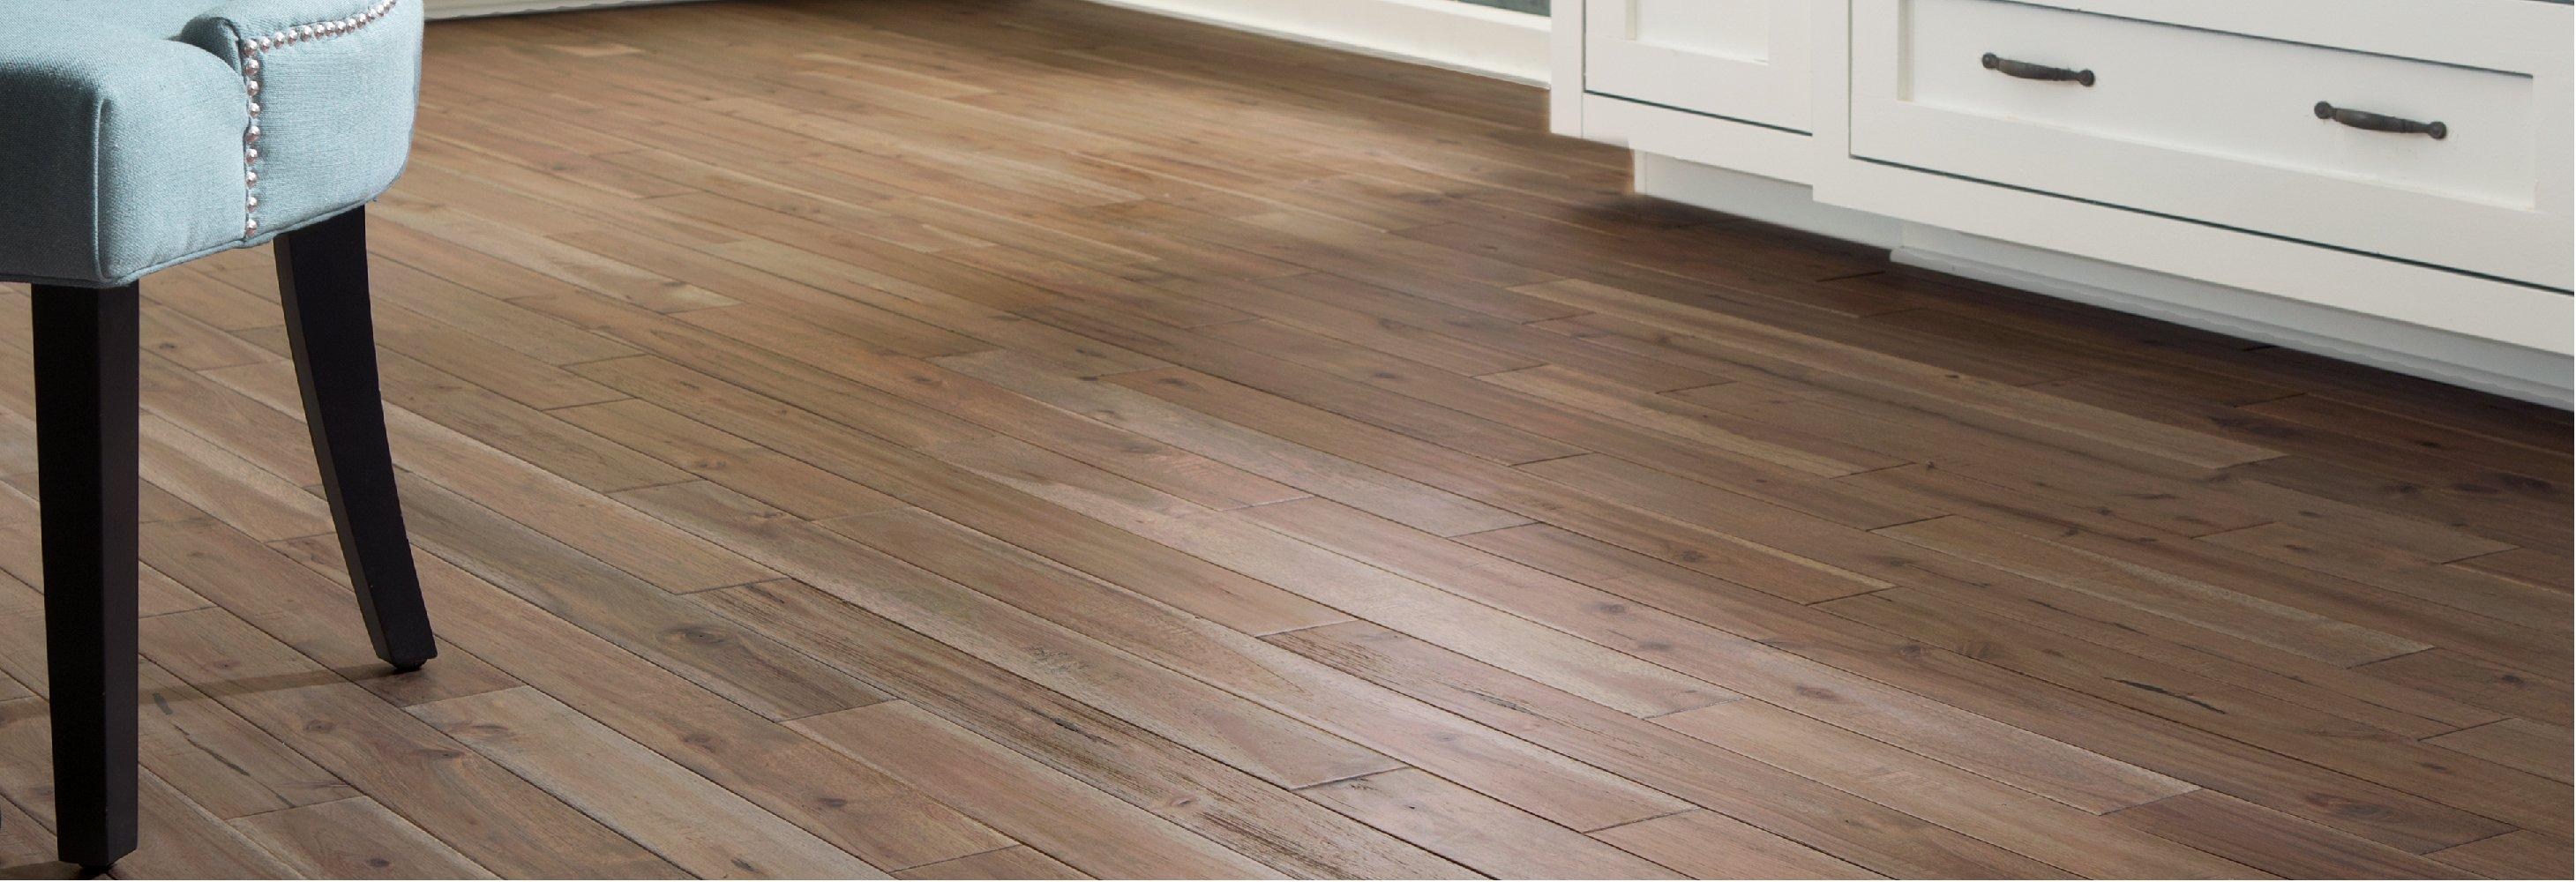 Solid wood floor solid hardwood flooring MTIUYEN